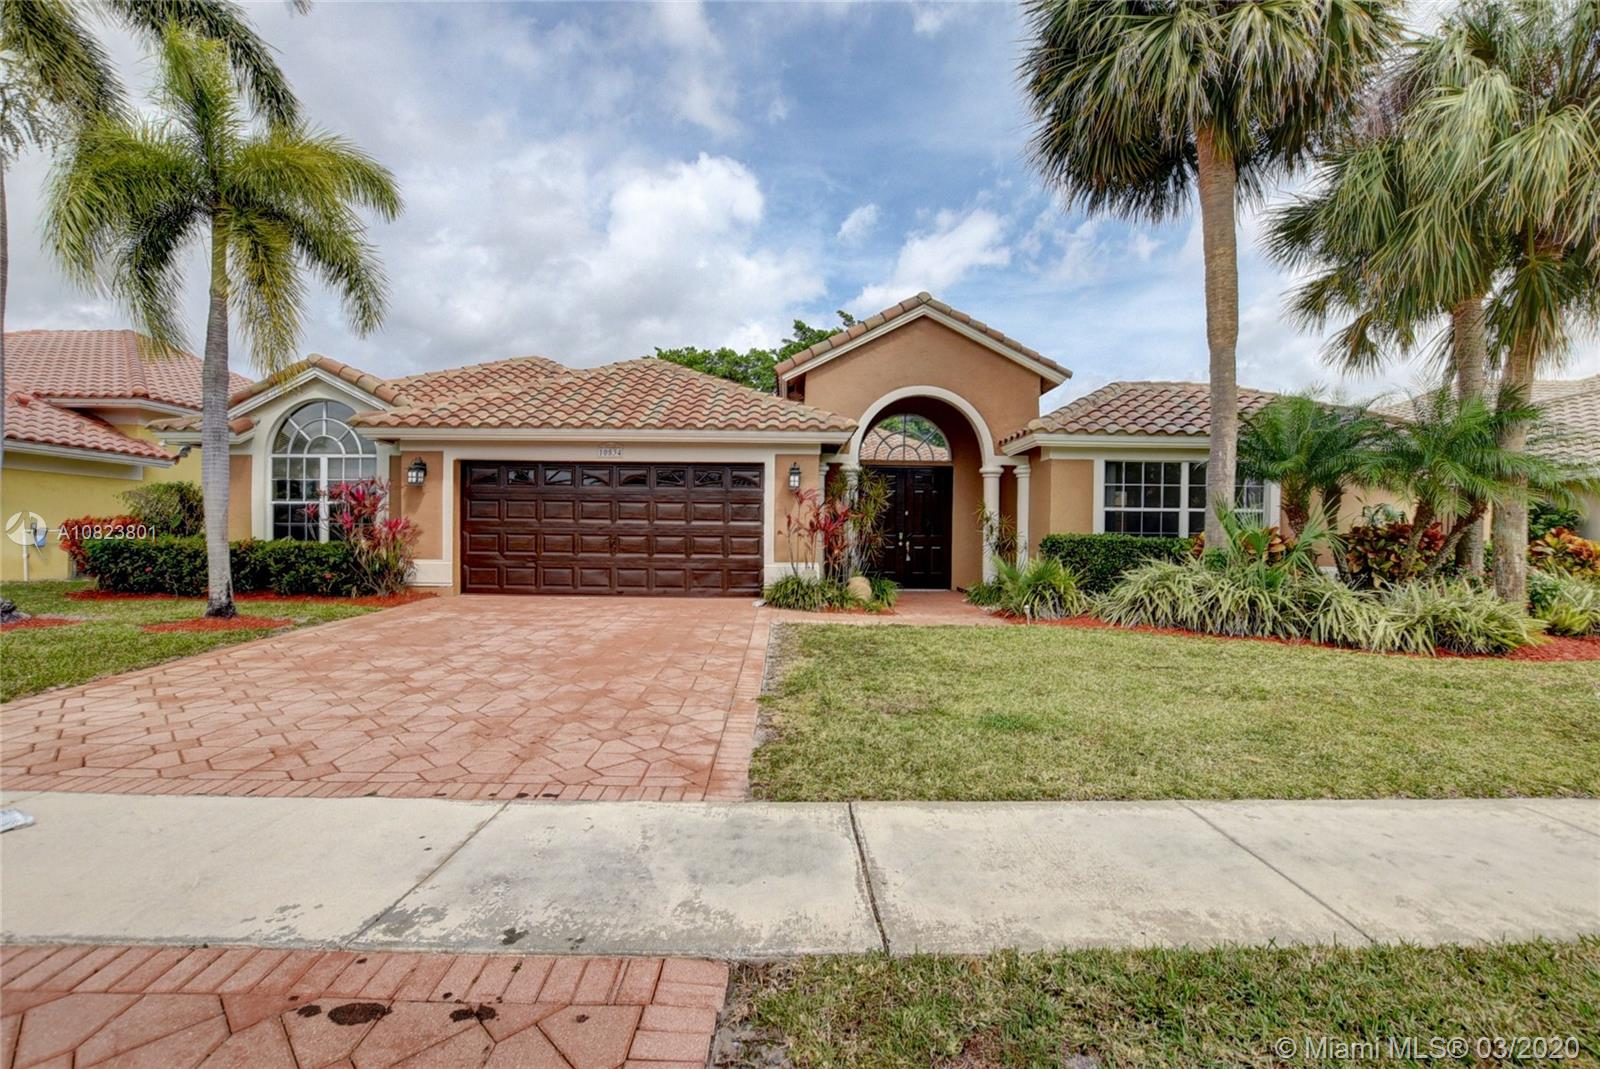 10534 Maple Chase Dr, Boca Raton, FL 33498 - Boca Raton, FL real estate listing